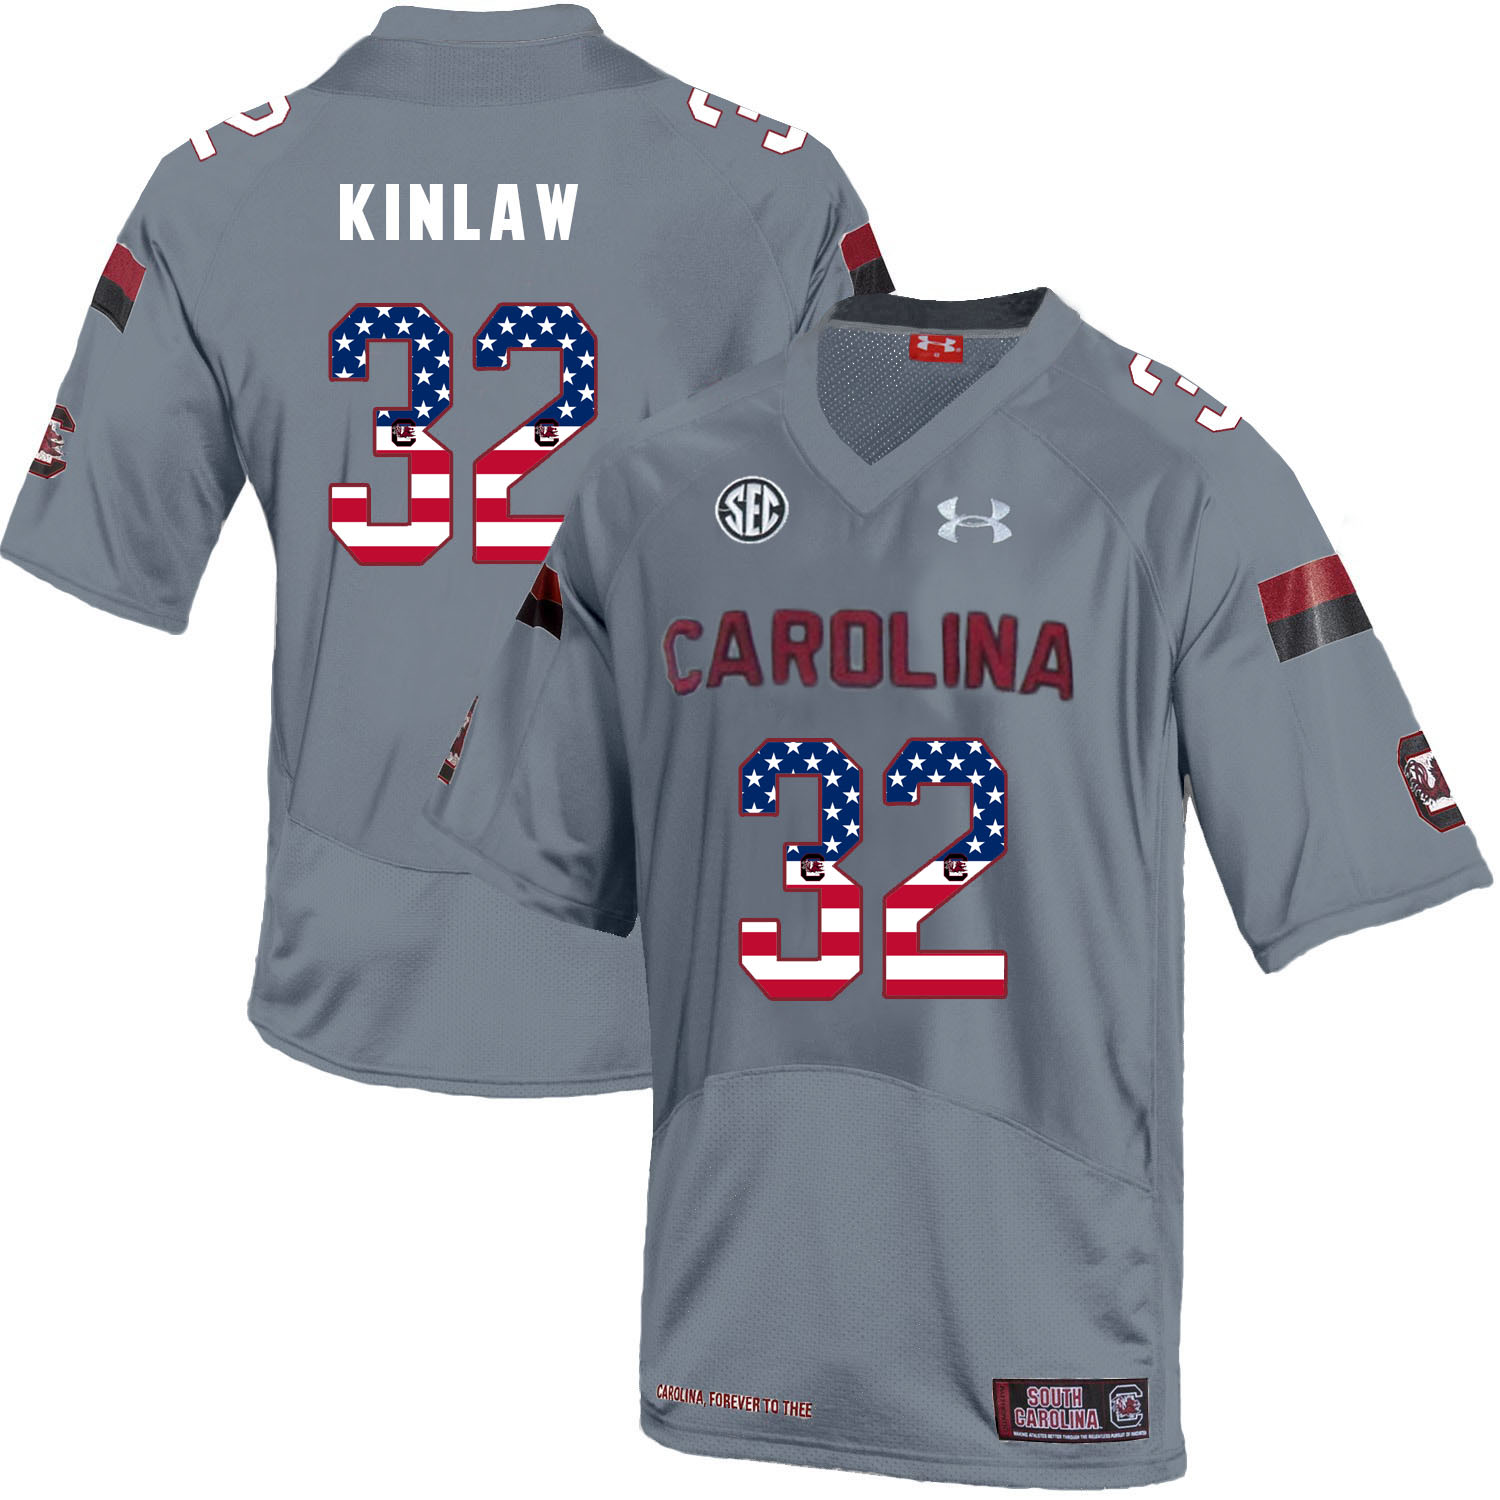 South Carolina Gamecocks 32 Caleb Kinlaw Gray USA Flag College Football Jersey